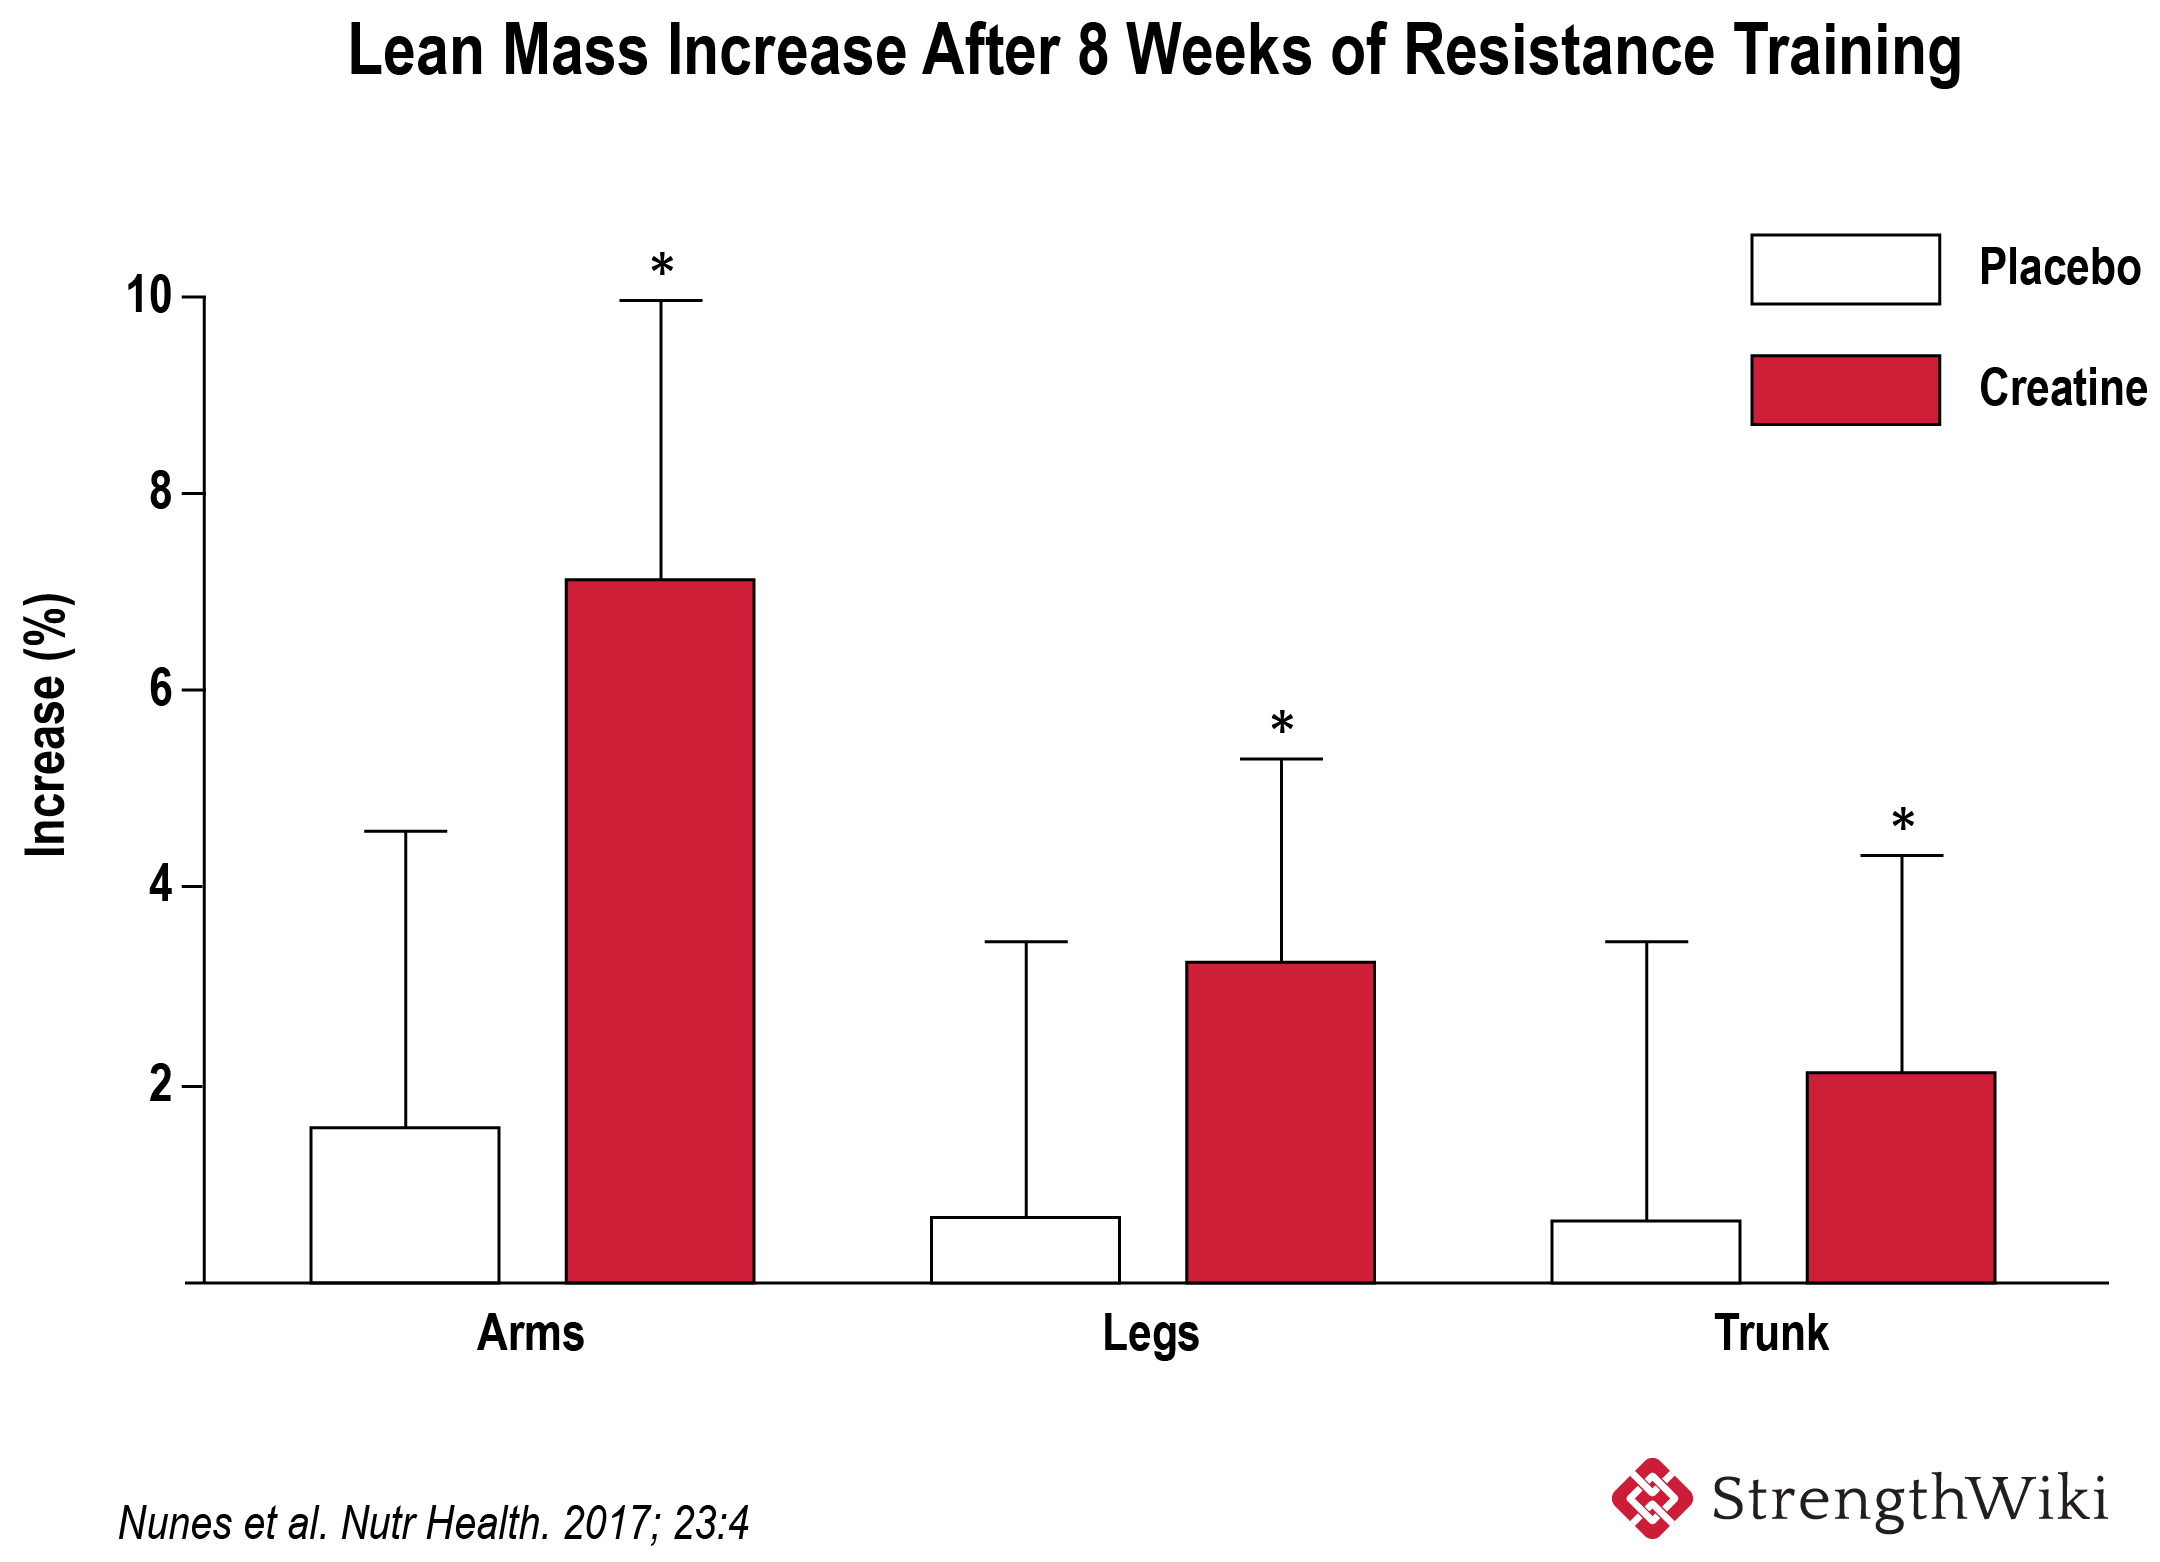 Lean mass increase after creatine